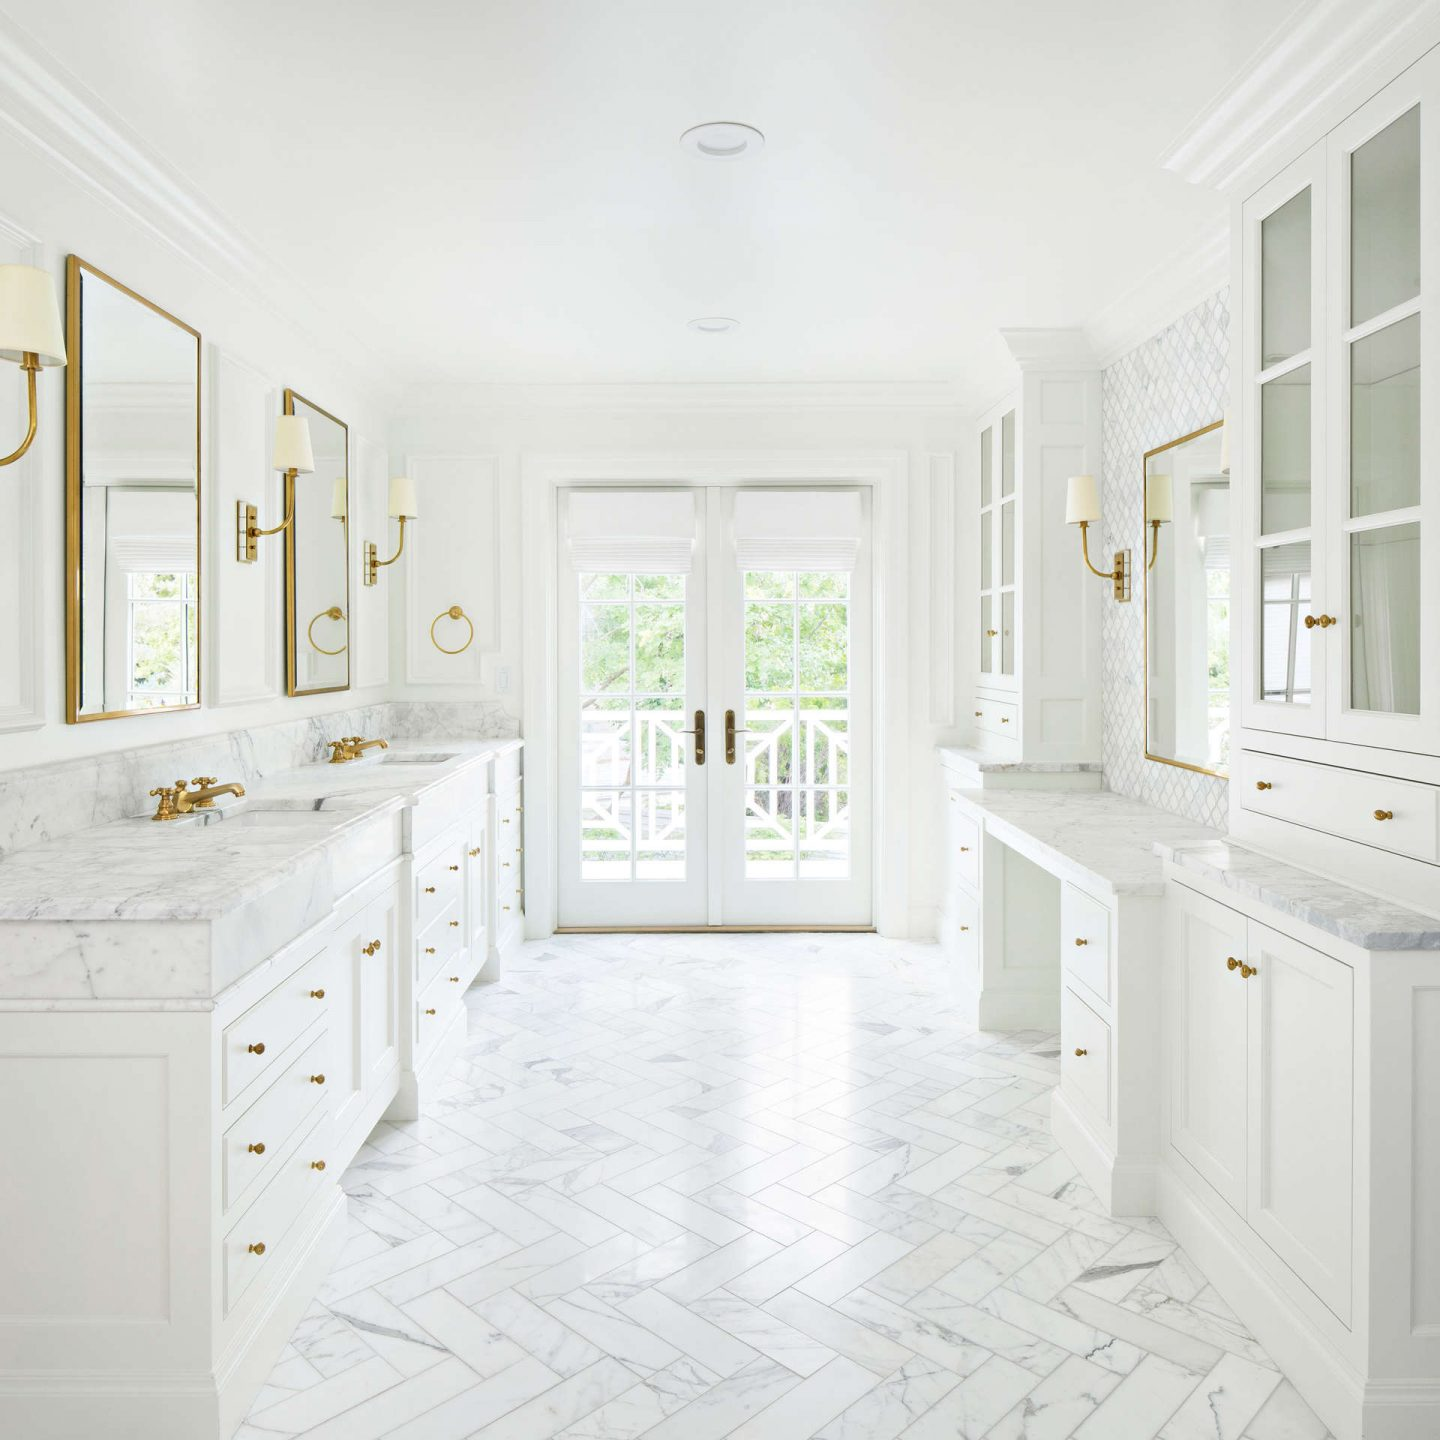 Calcatta marble is set in a herringbone pattern on the floor of a luxurious bathroom. #thefoxgroup #bathroomdesign #calacattamarble #herringbone